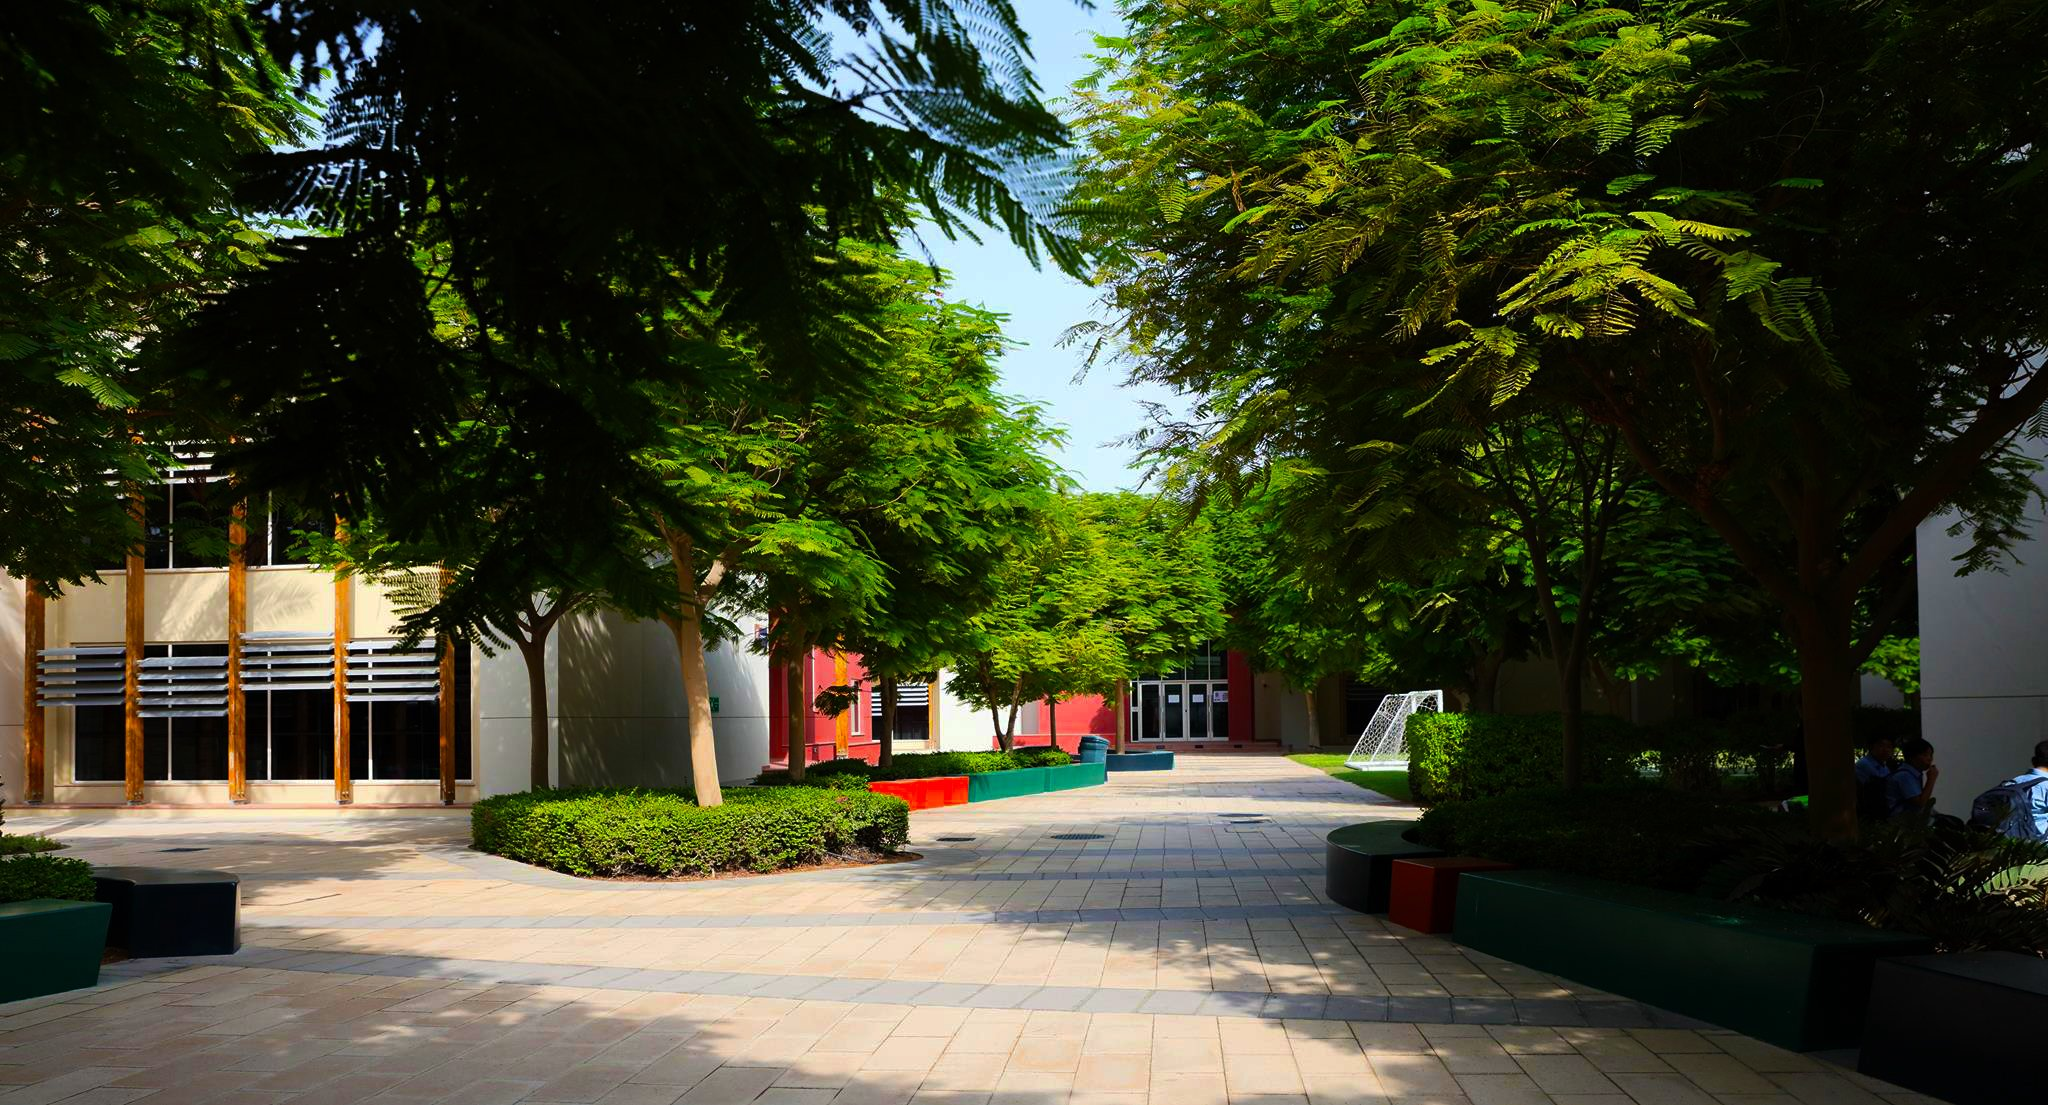 One of the courtyards at Bradenton Preparatory Academy in Dubai Sports City